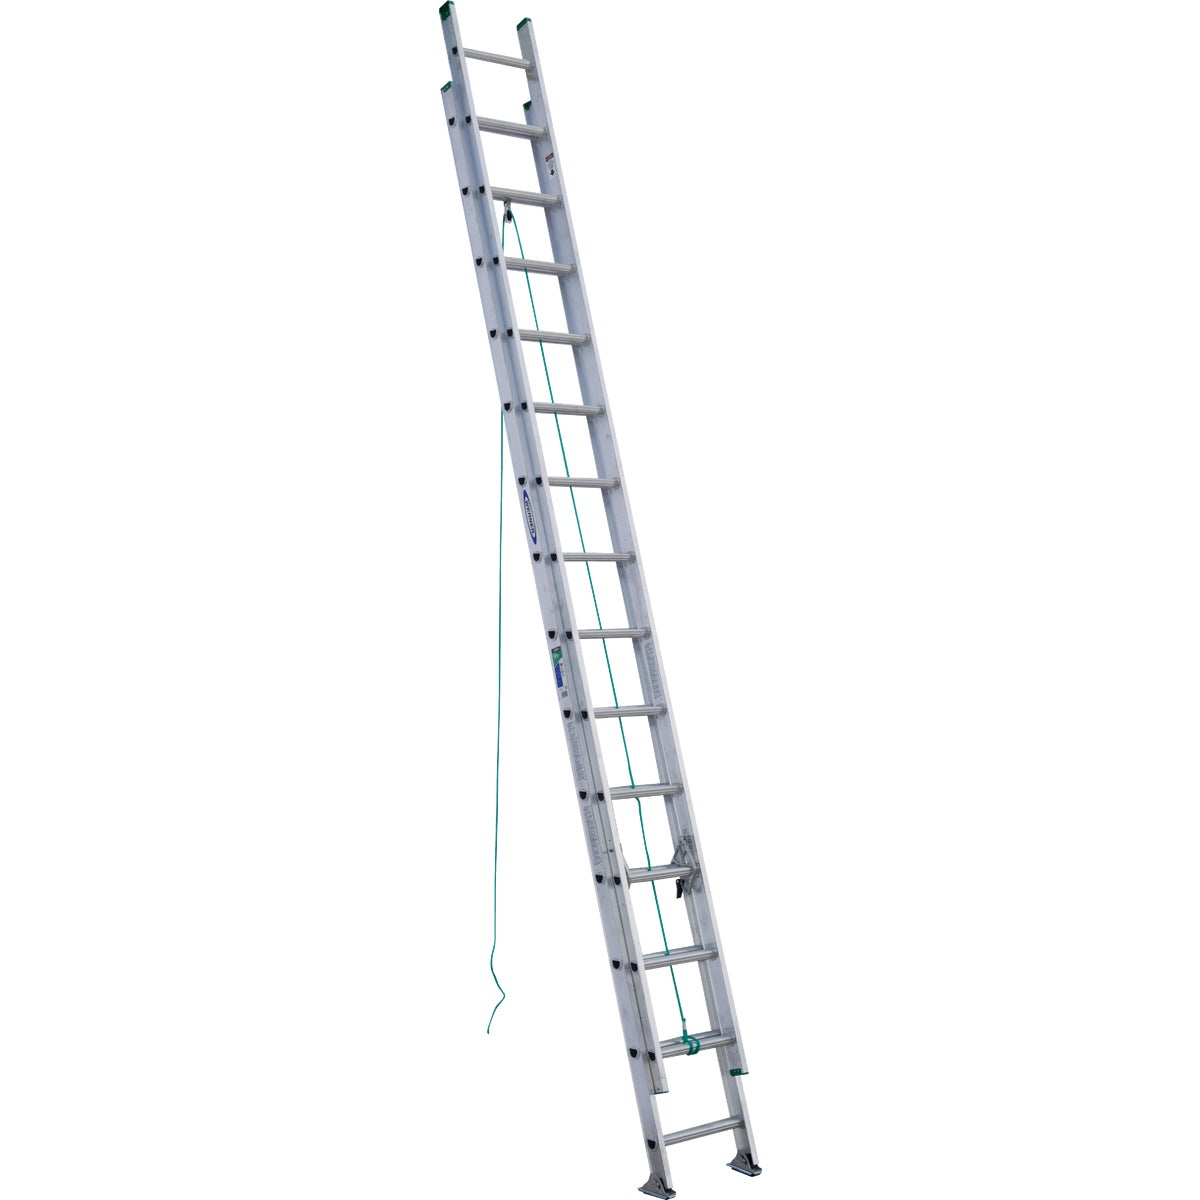 T-2 28' ALUM EXT LADDER - D1228-2 by Werner Ladder